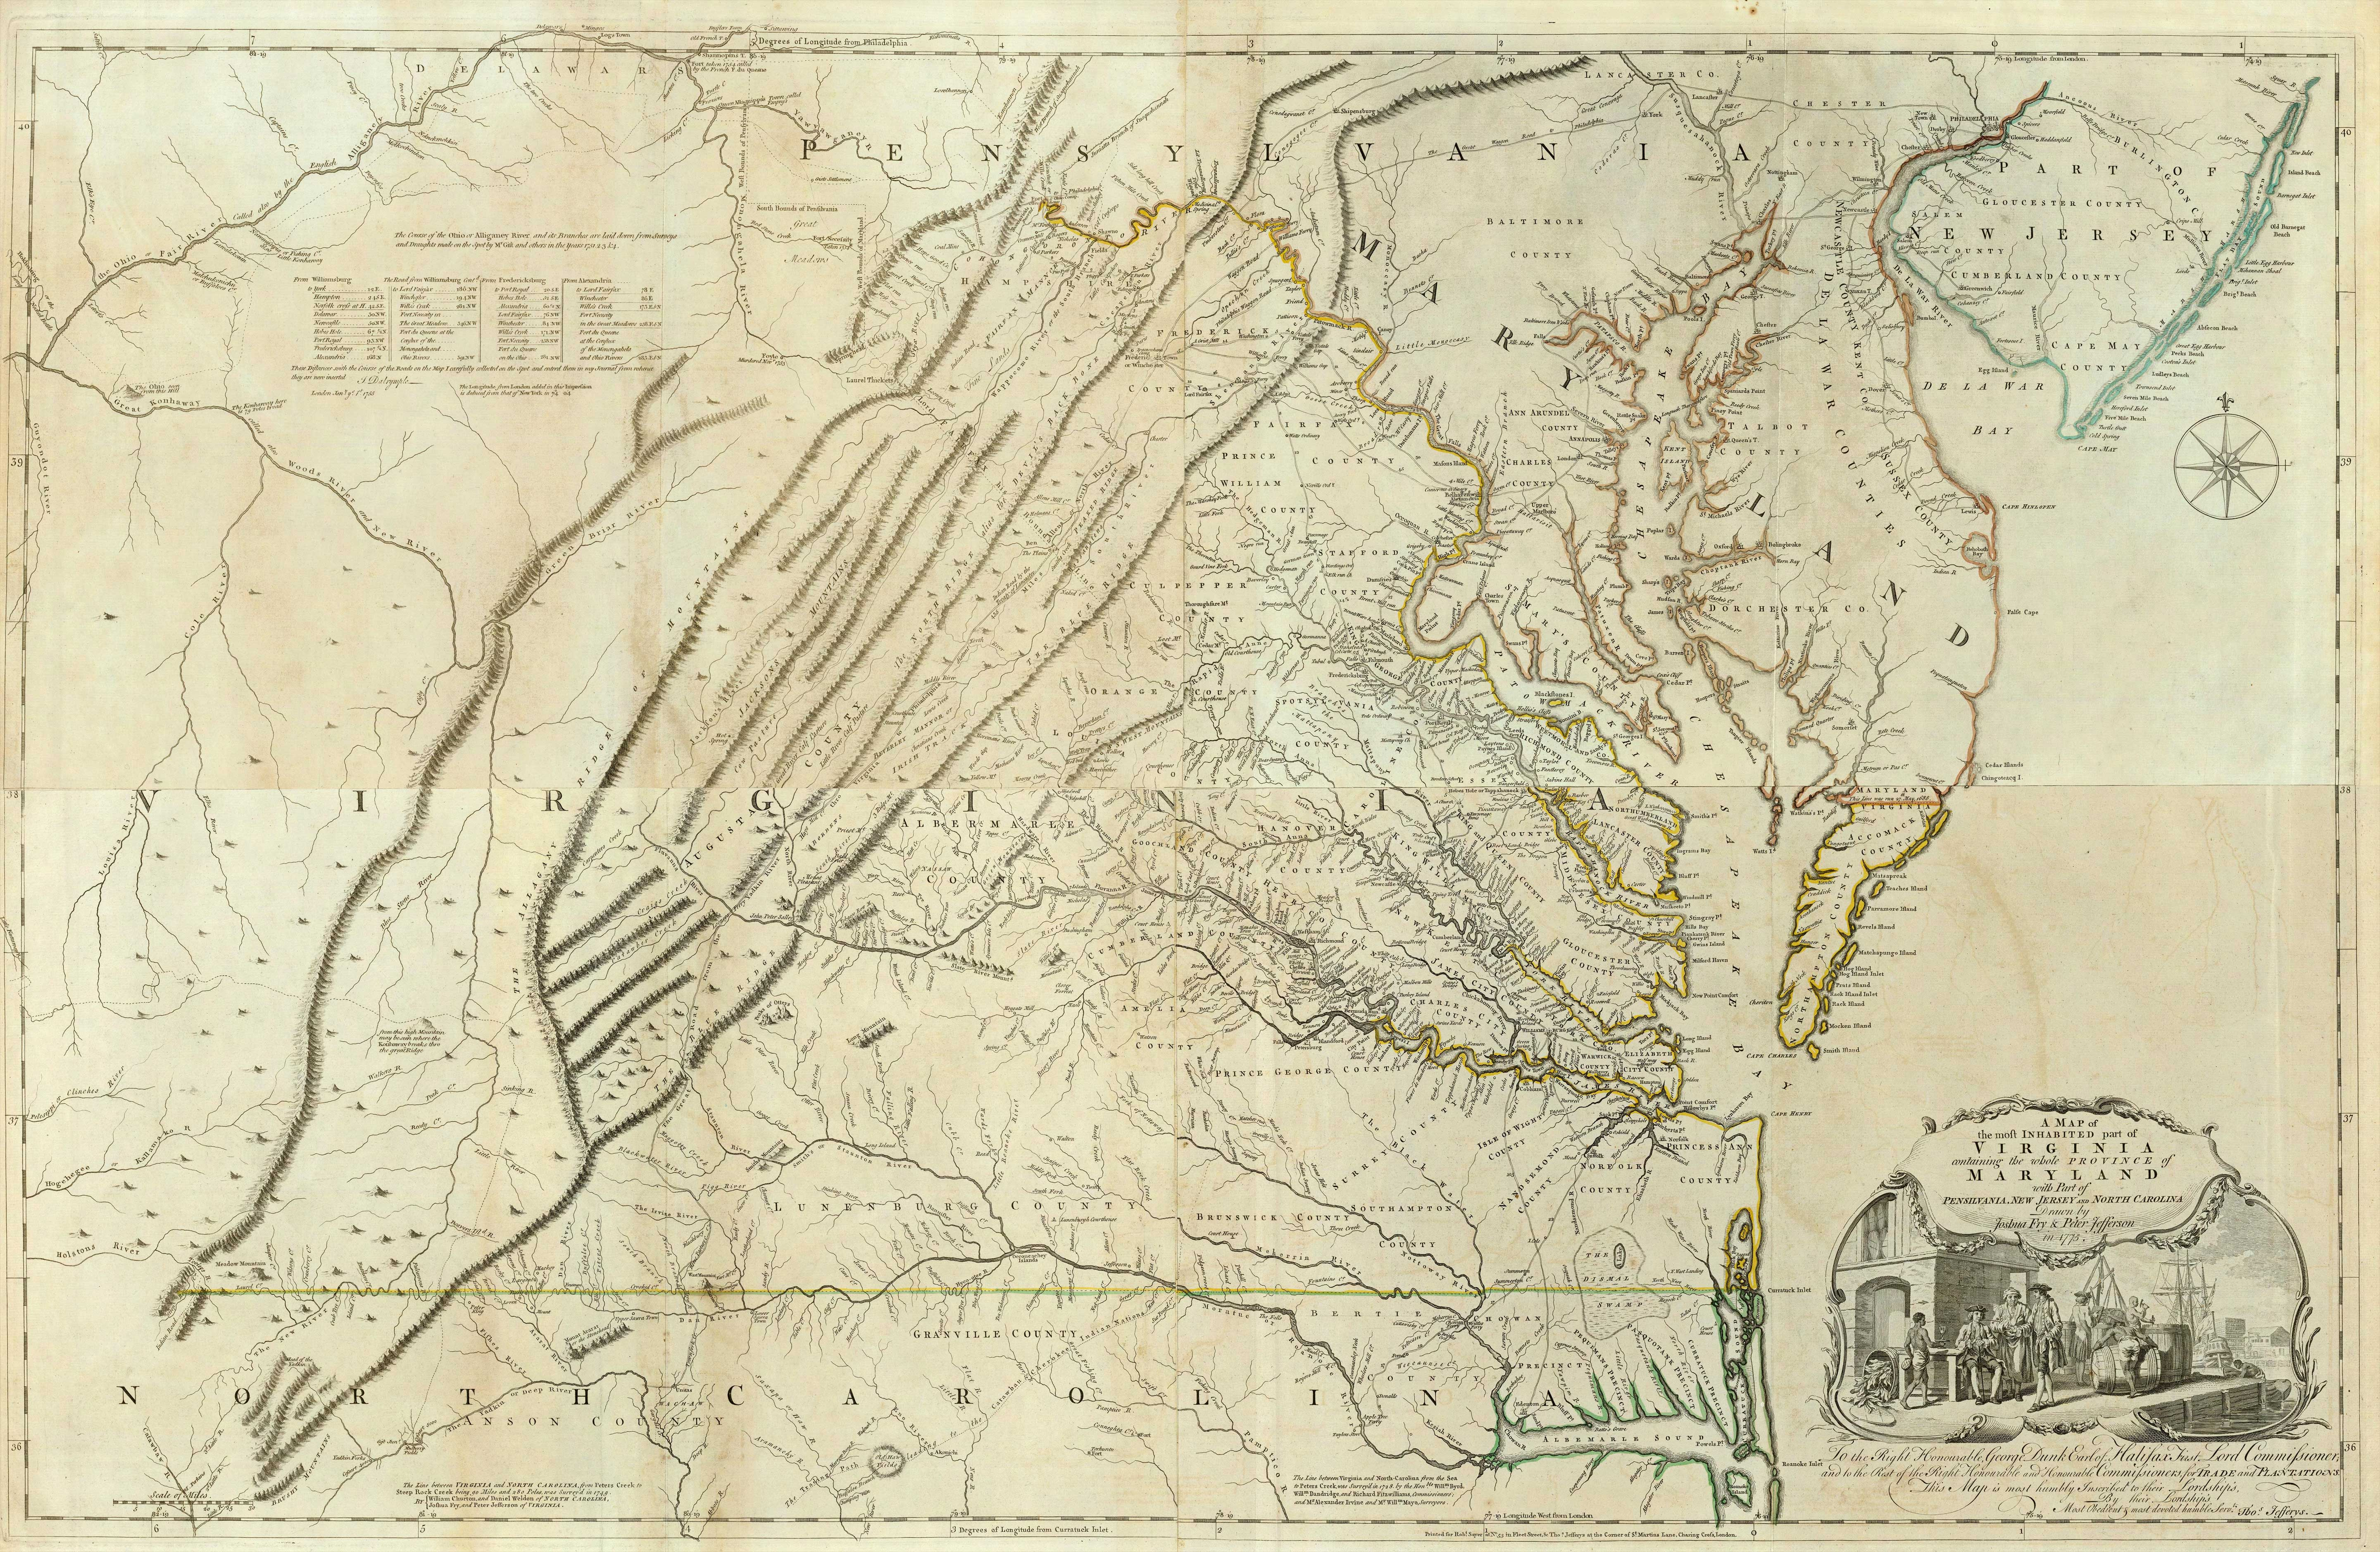 Old Historical City, County and State Maps of Virginia on map of nottoway co va, map of colleges in virginia, map of bath co va, map of halifax co nc, map of patrick co va, map of nelson co va, map of carroll co va, map of orange co va, map of wythe co va,